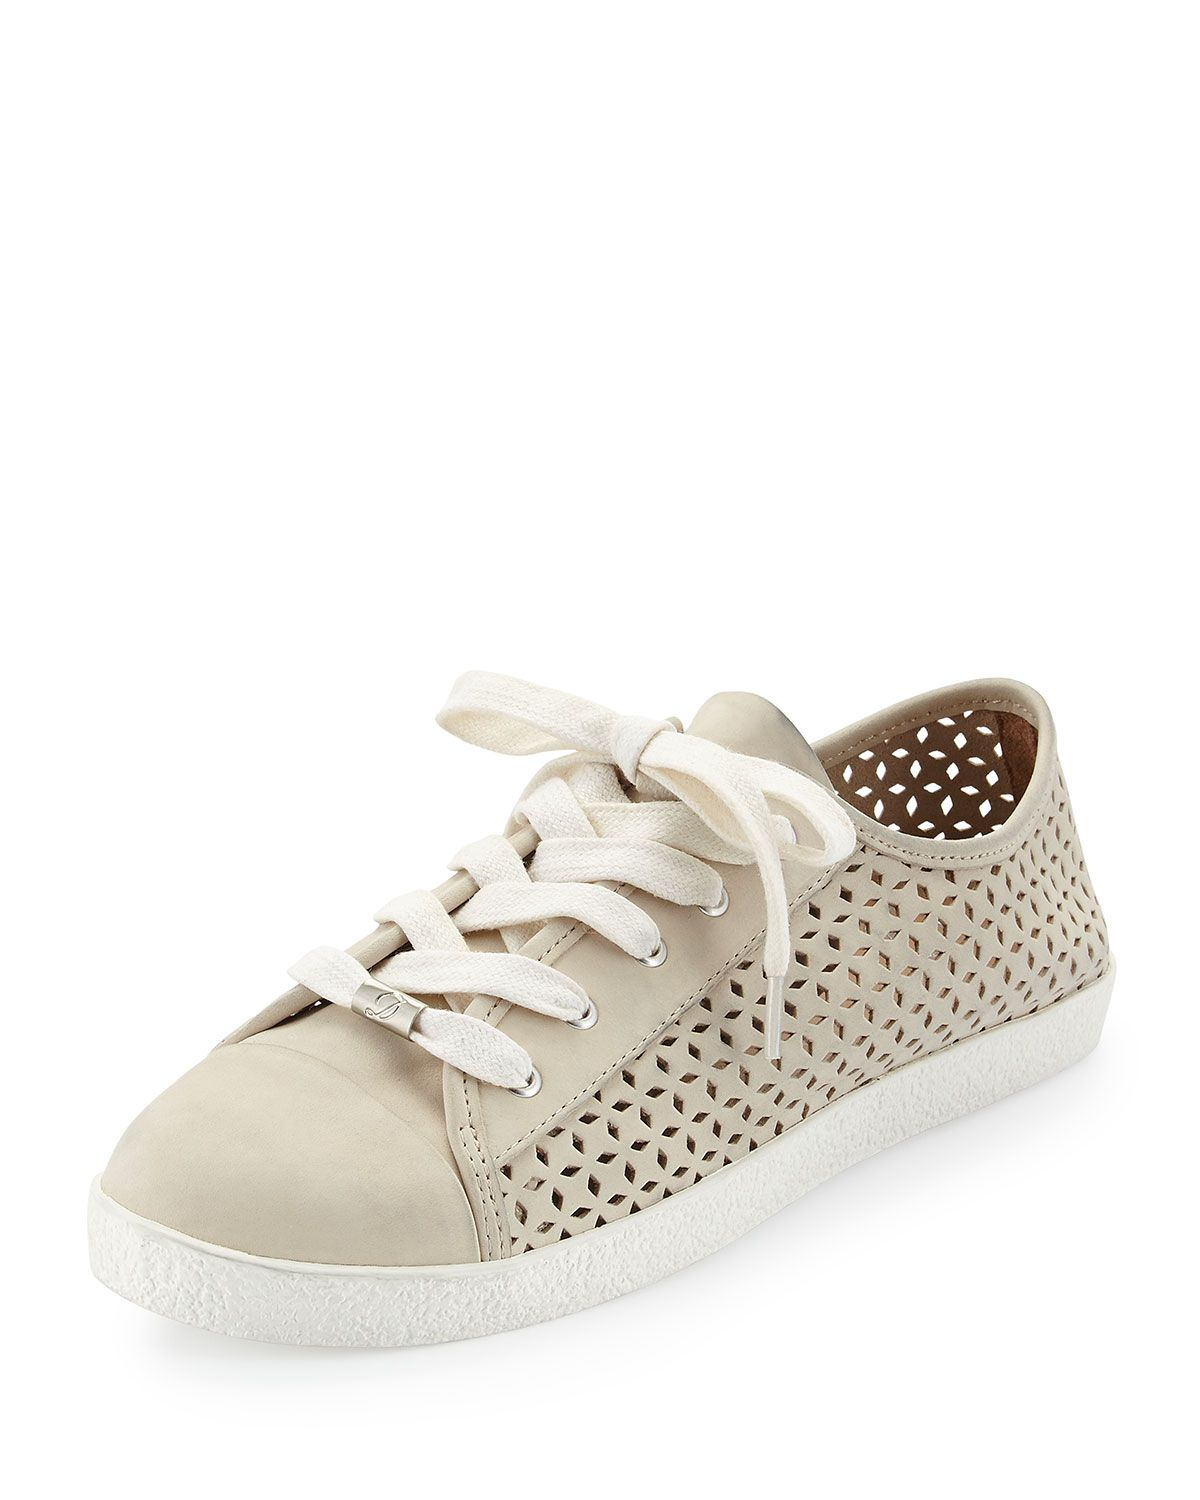 Magie Perforated Nubuck Low-Top Sneaker, Size: 40B/10B, Lt. Putty - Delman